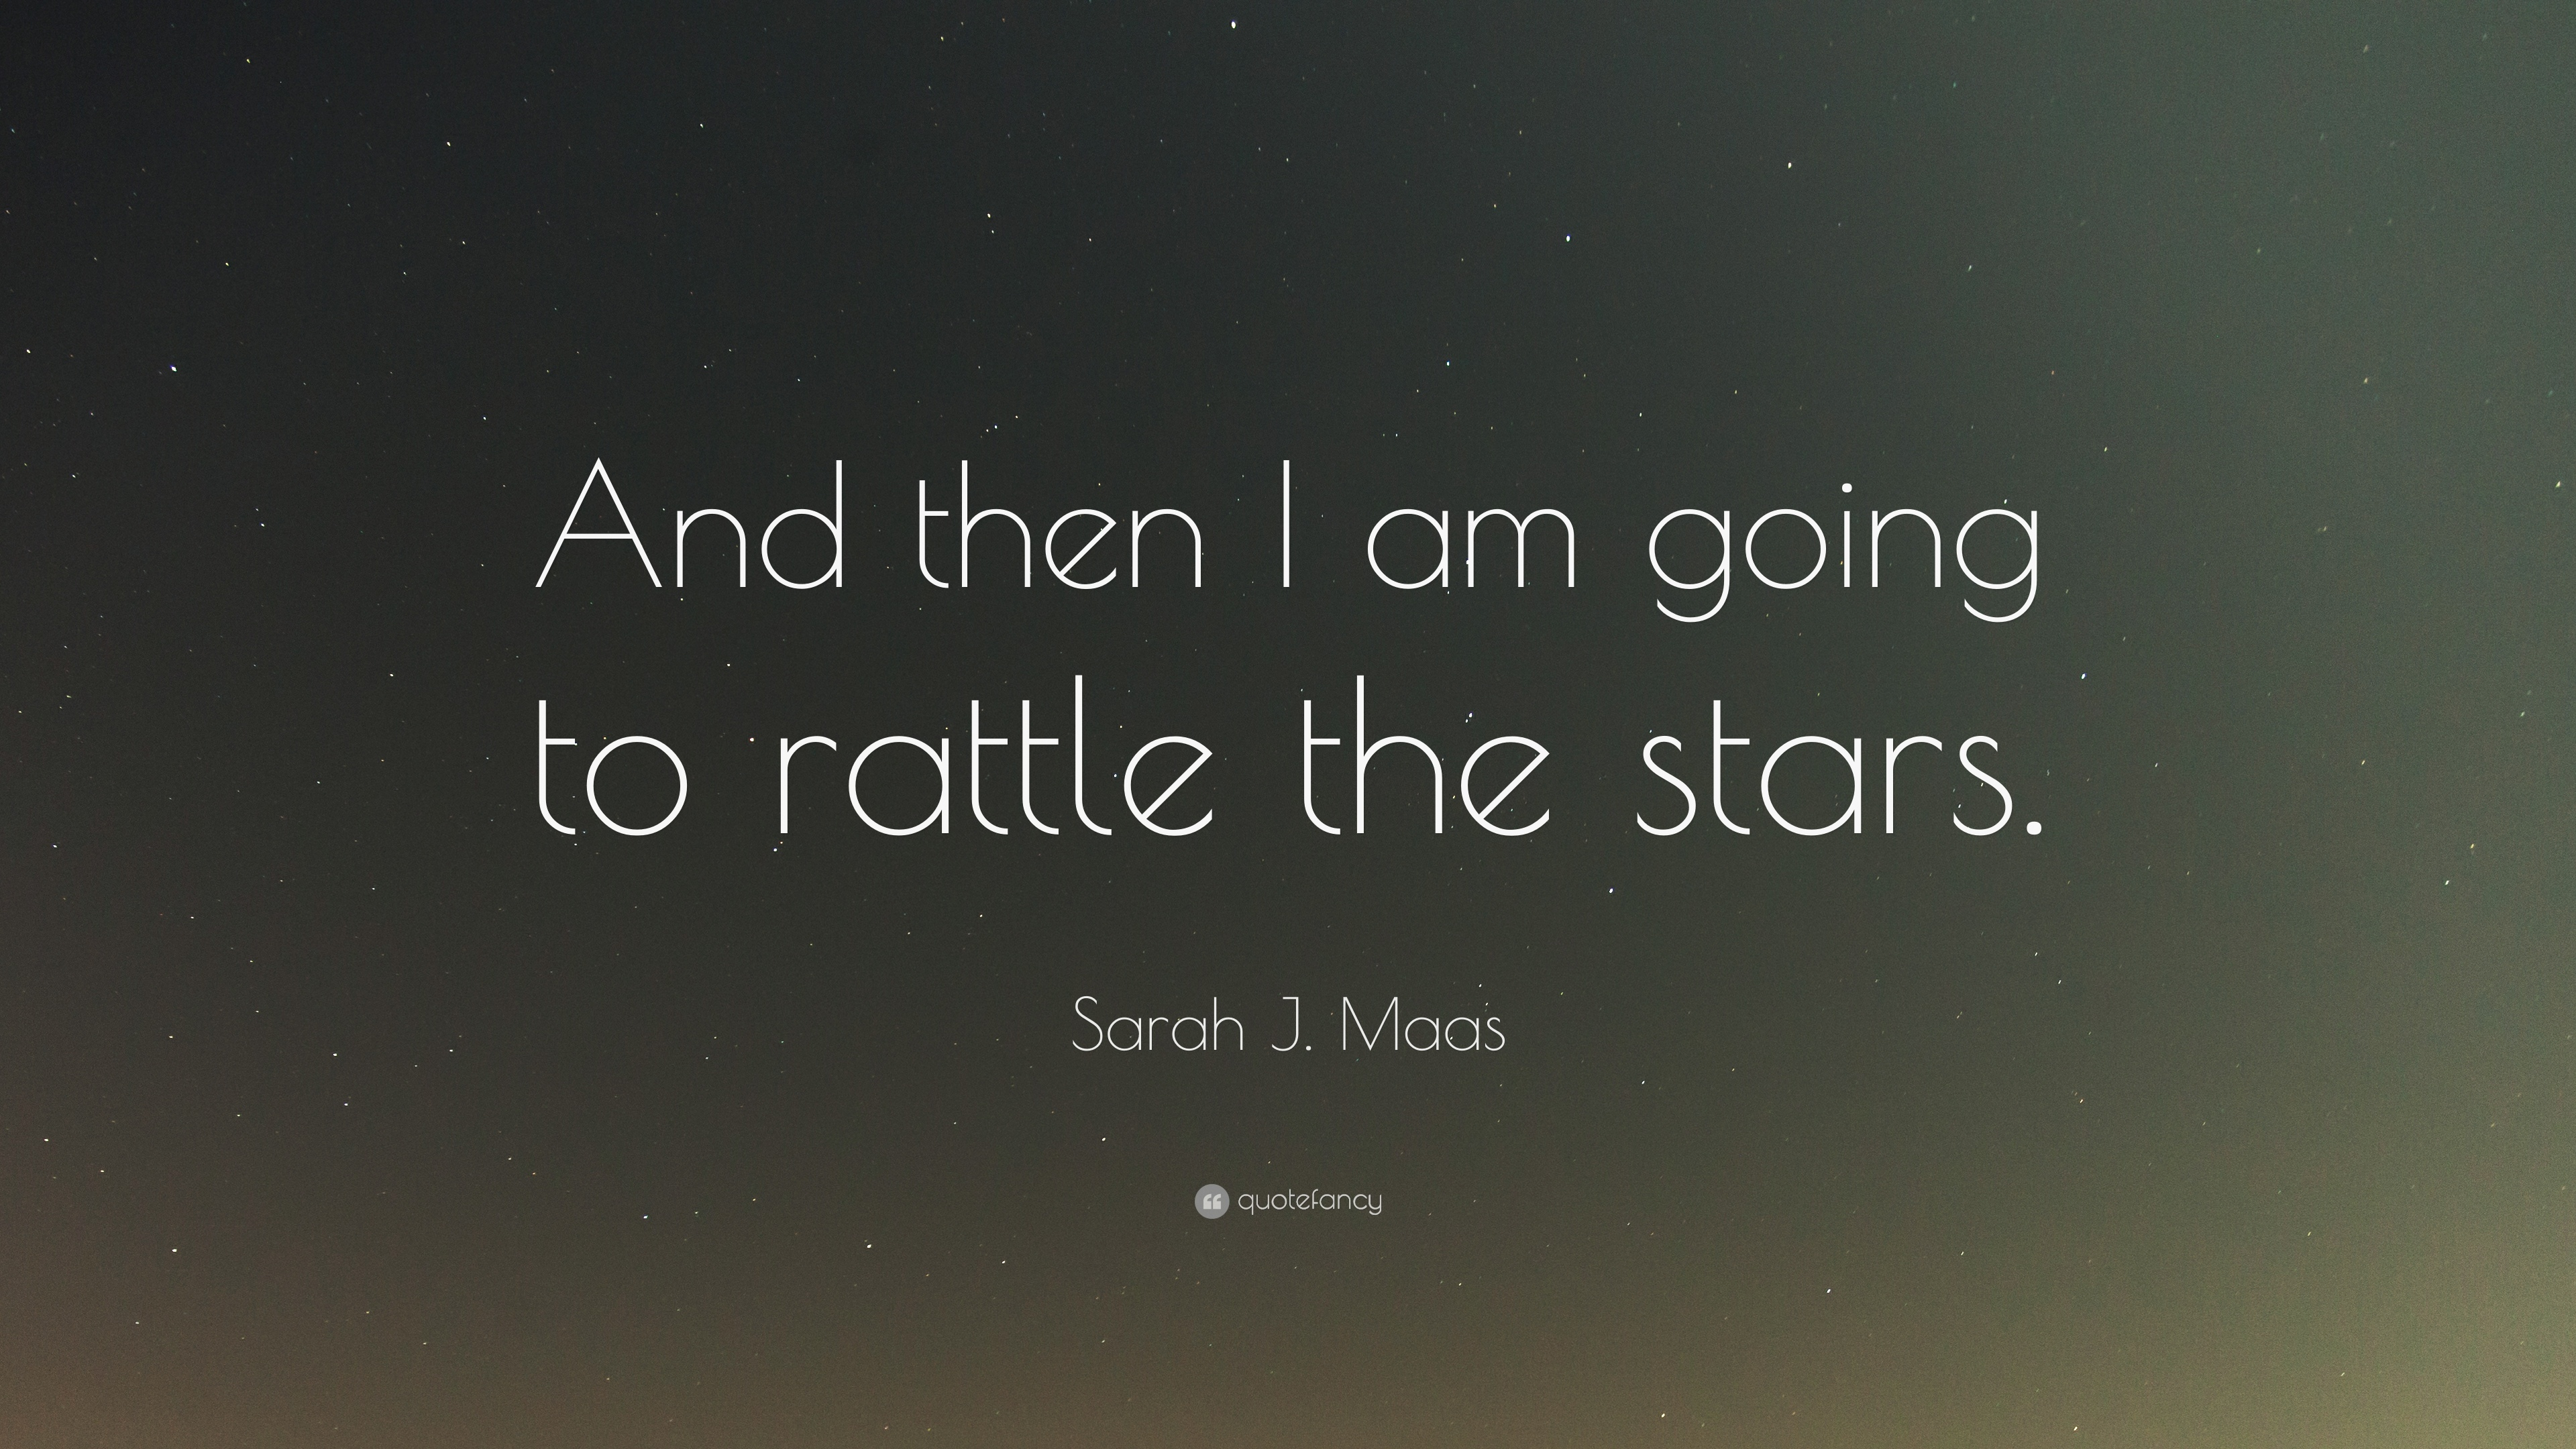 Sarah J. Maas Quotes (48 Wallpapers)